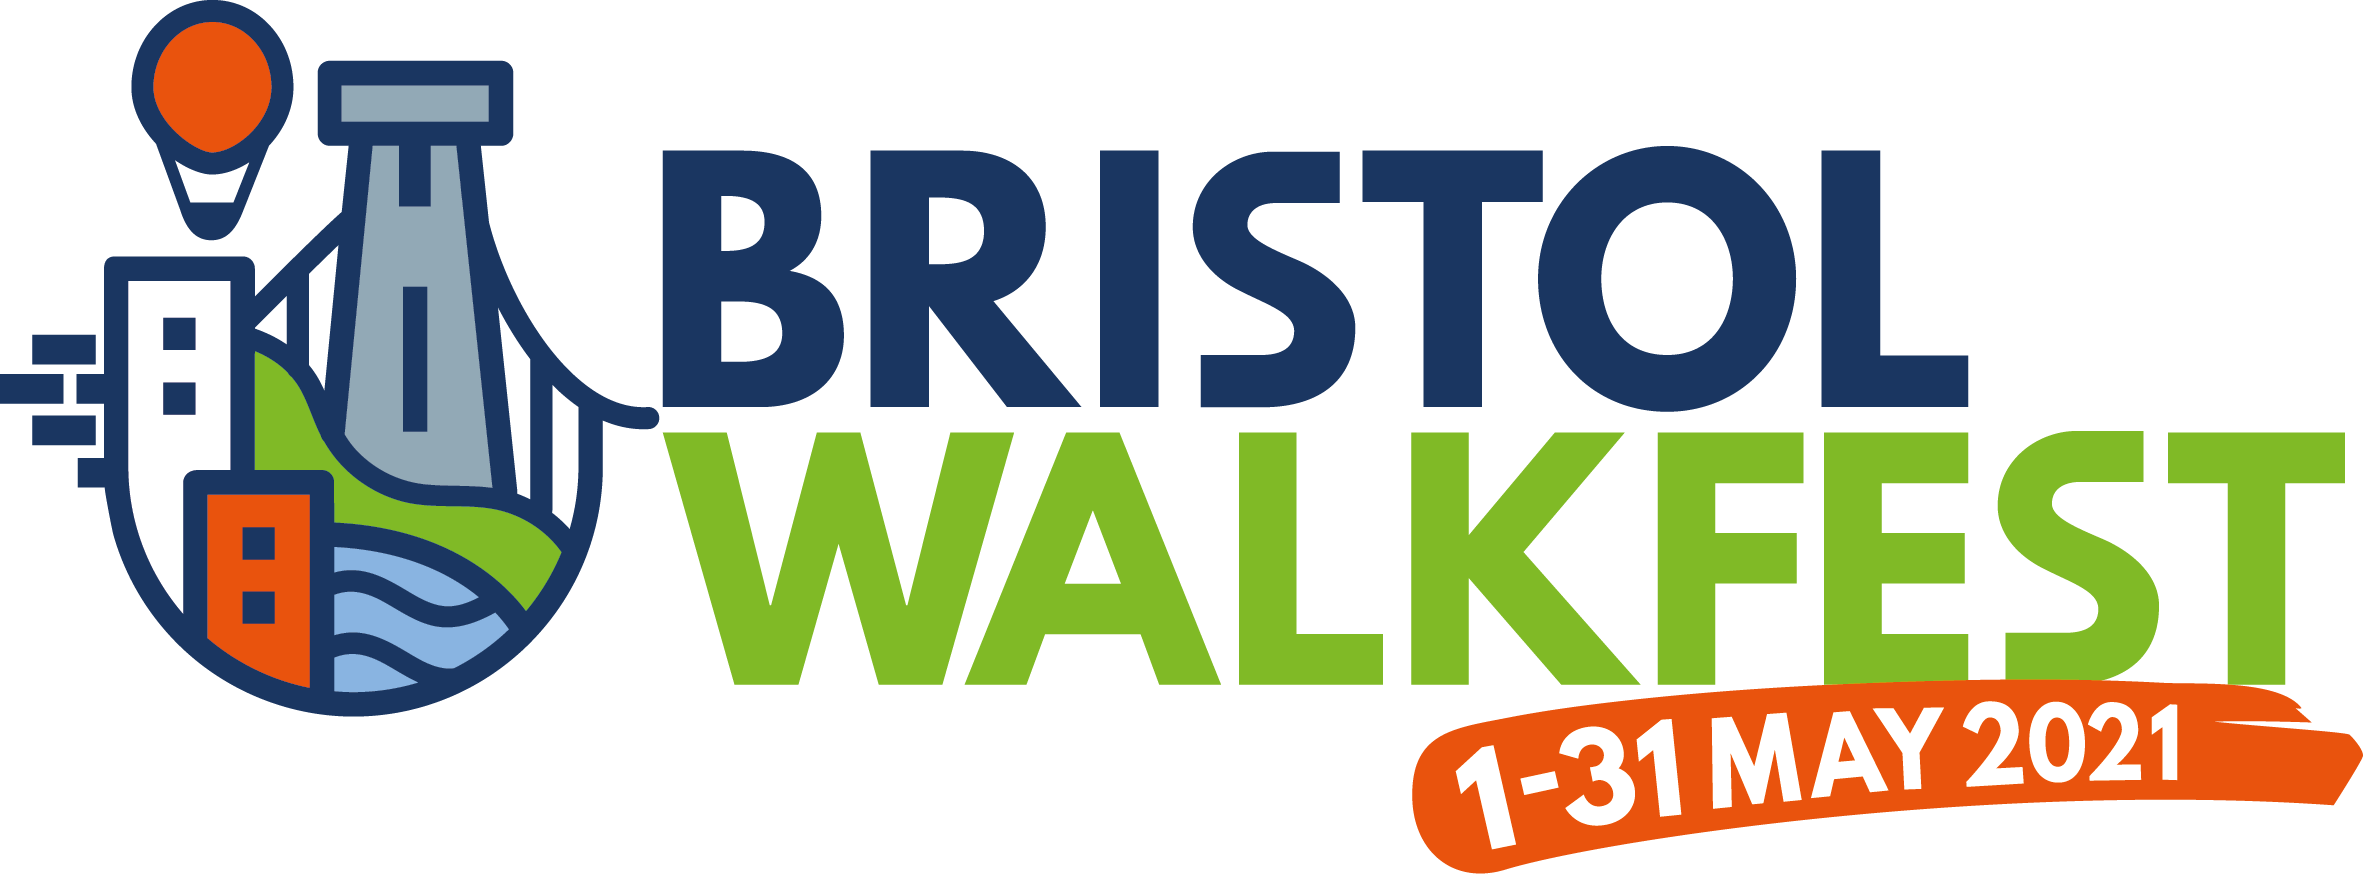 Bristol Walk Fest Home